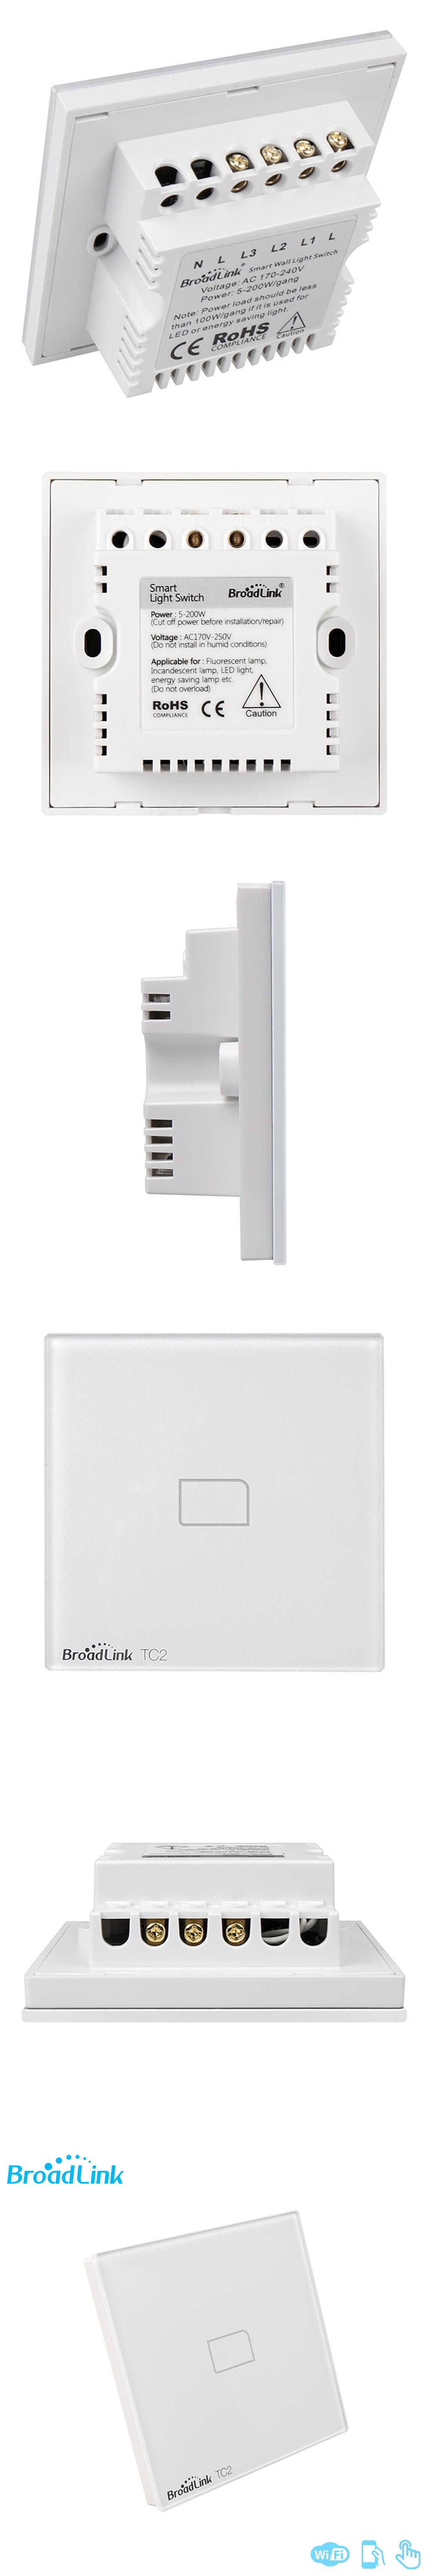 Broadlink Tc2 1gang Uk Standard Smart Home Touch Panel 433mhz Remote How Does A Light Switch Work Control Wall With Rm Pro Via Wifi Network